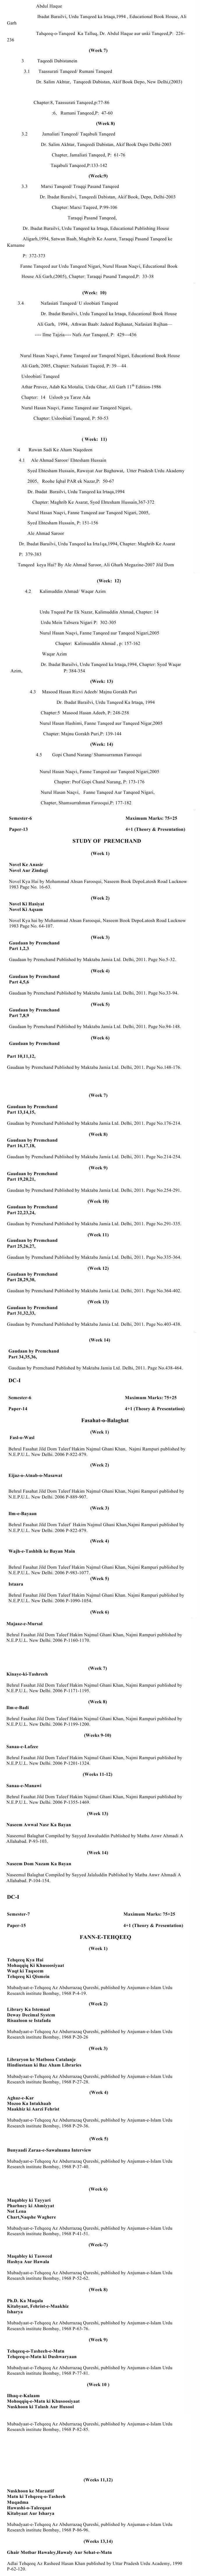 DU DC I, DC II and Applied Course Syllabus - Urdu